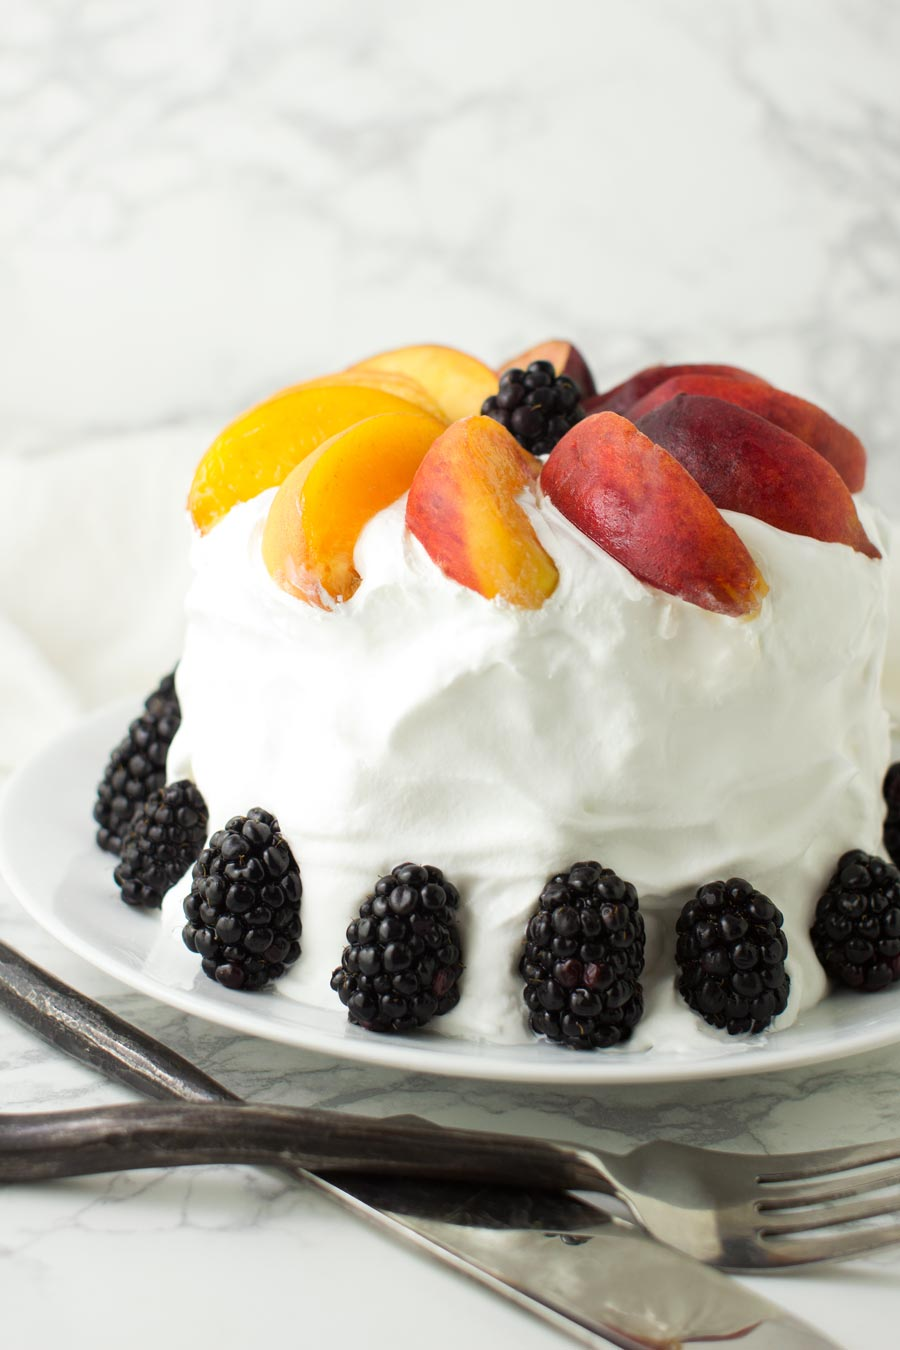 Watermelon Cake recipe from acleanplate.com #paleo #aip #glutenfree